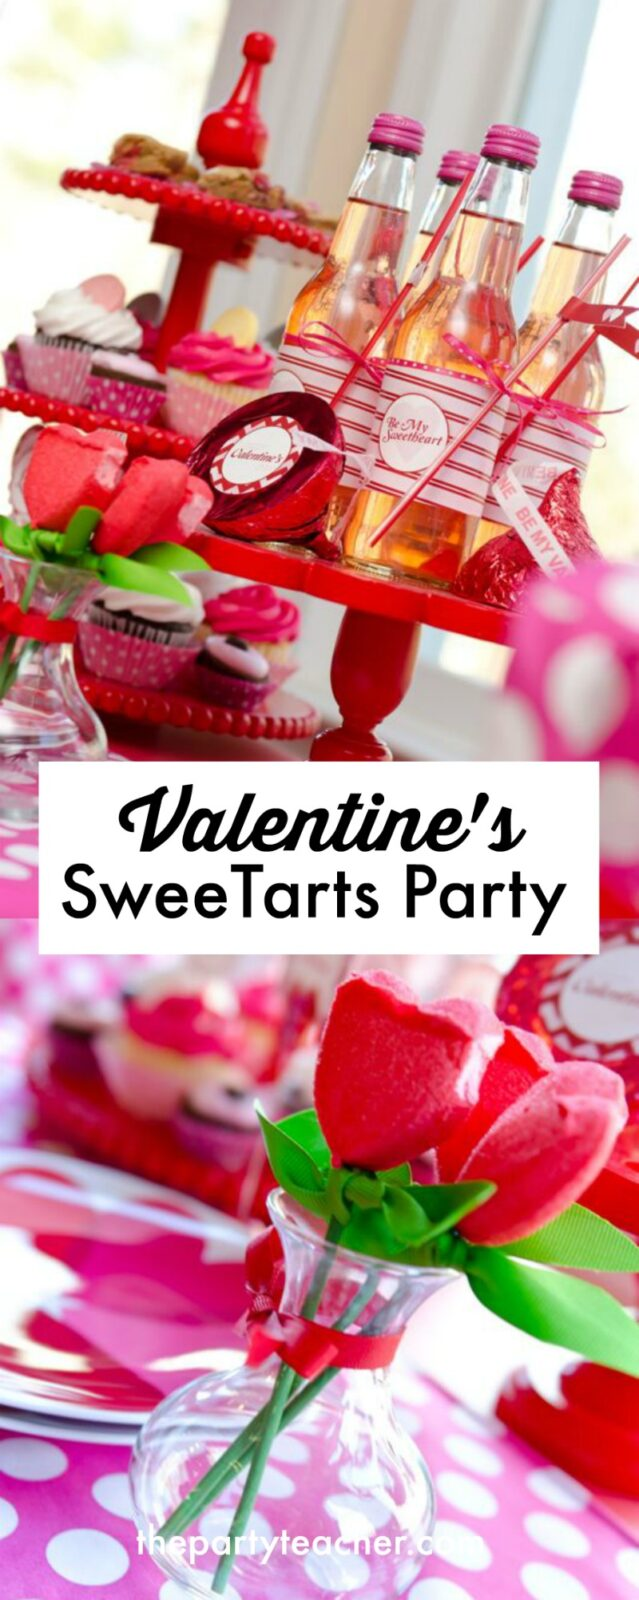 Valentine's SweeTarts Party by The Party Teacher